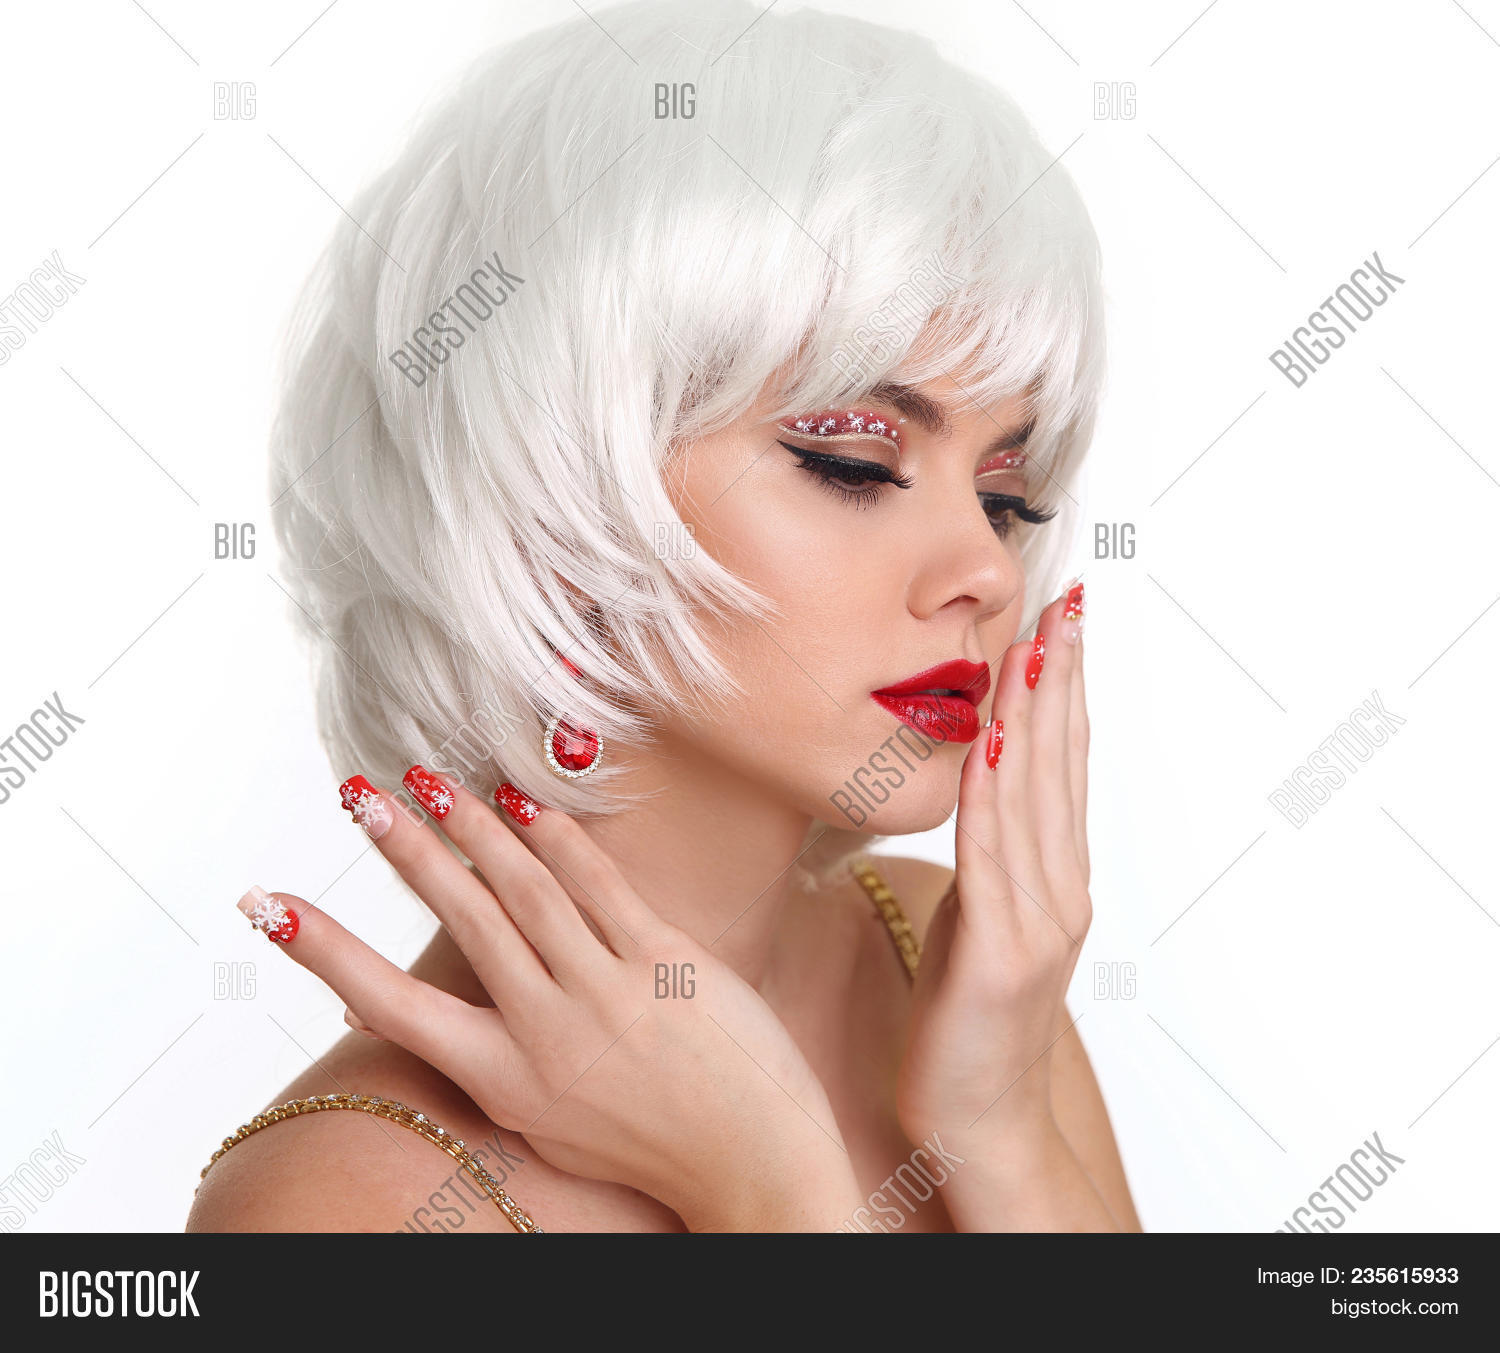 Christmas Makeup And Manicured Nails. Beautiful Blond Girl Closeup Portrait. Jewelry. White Short